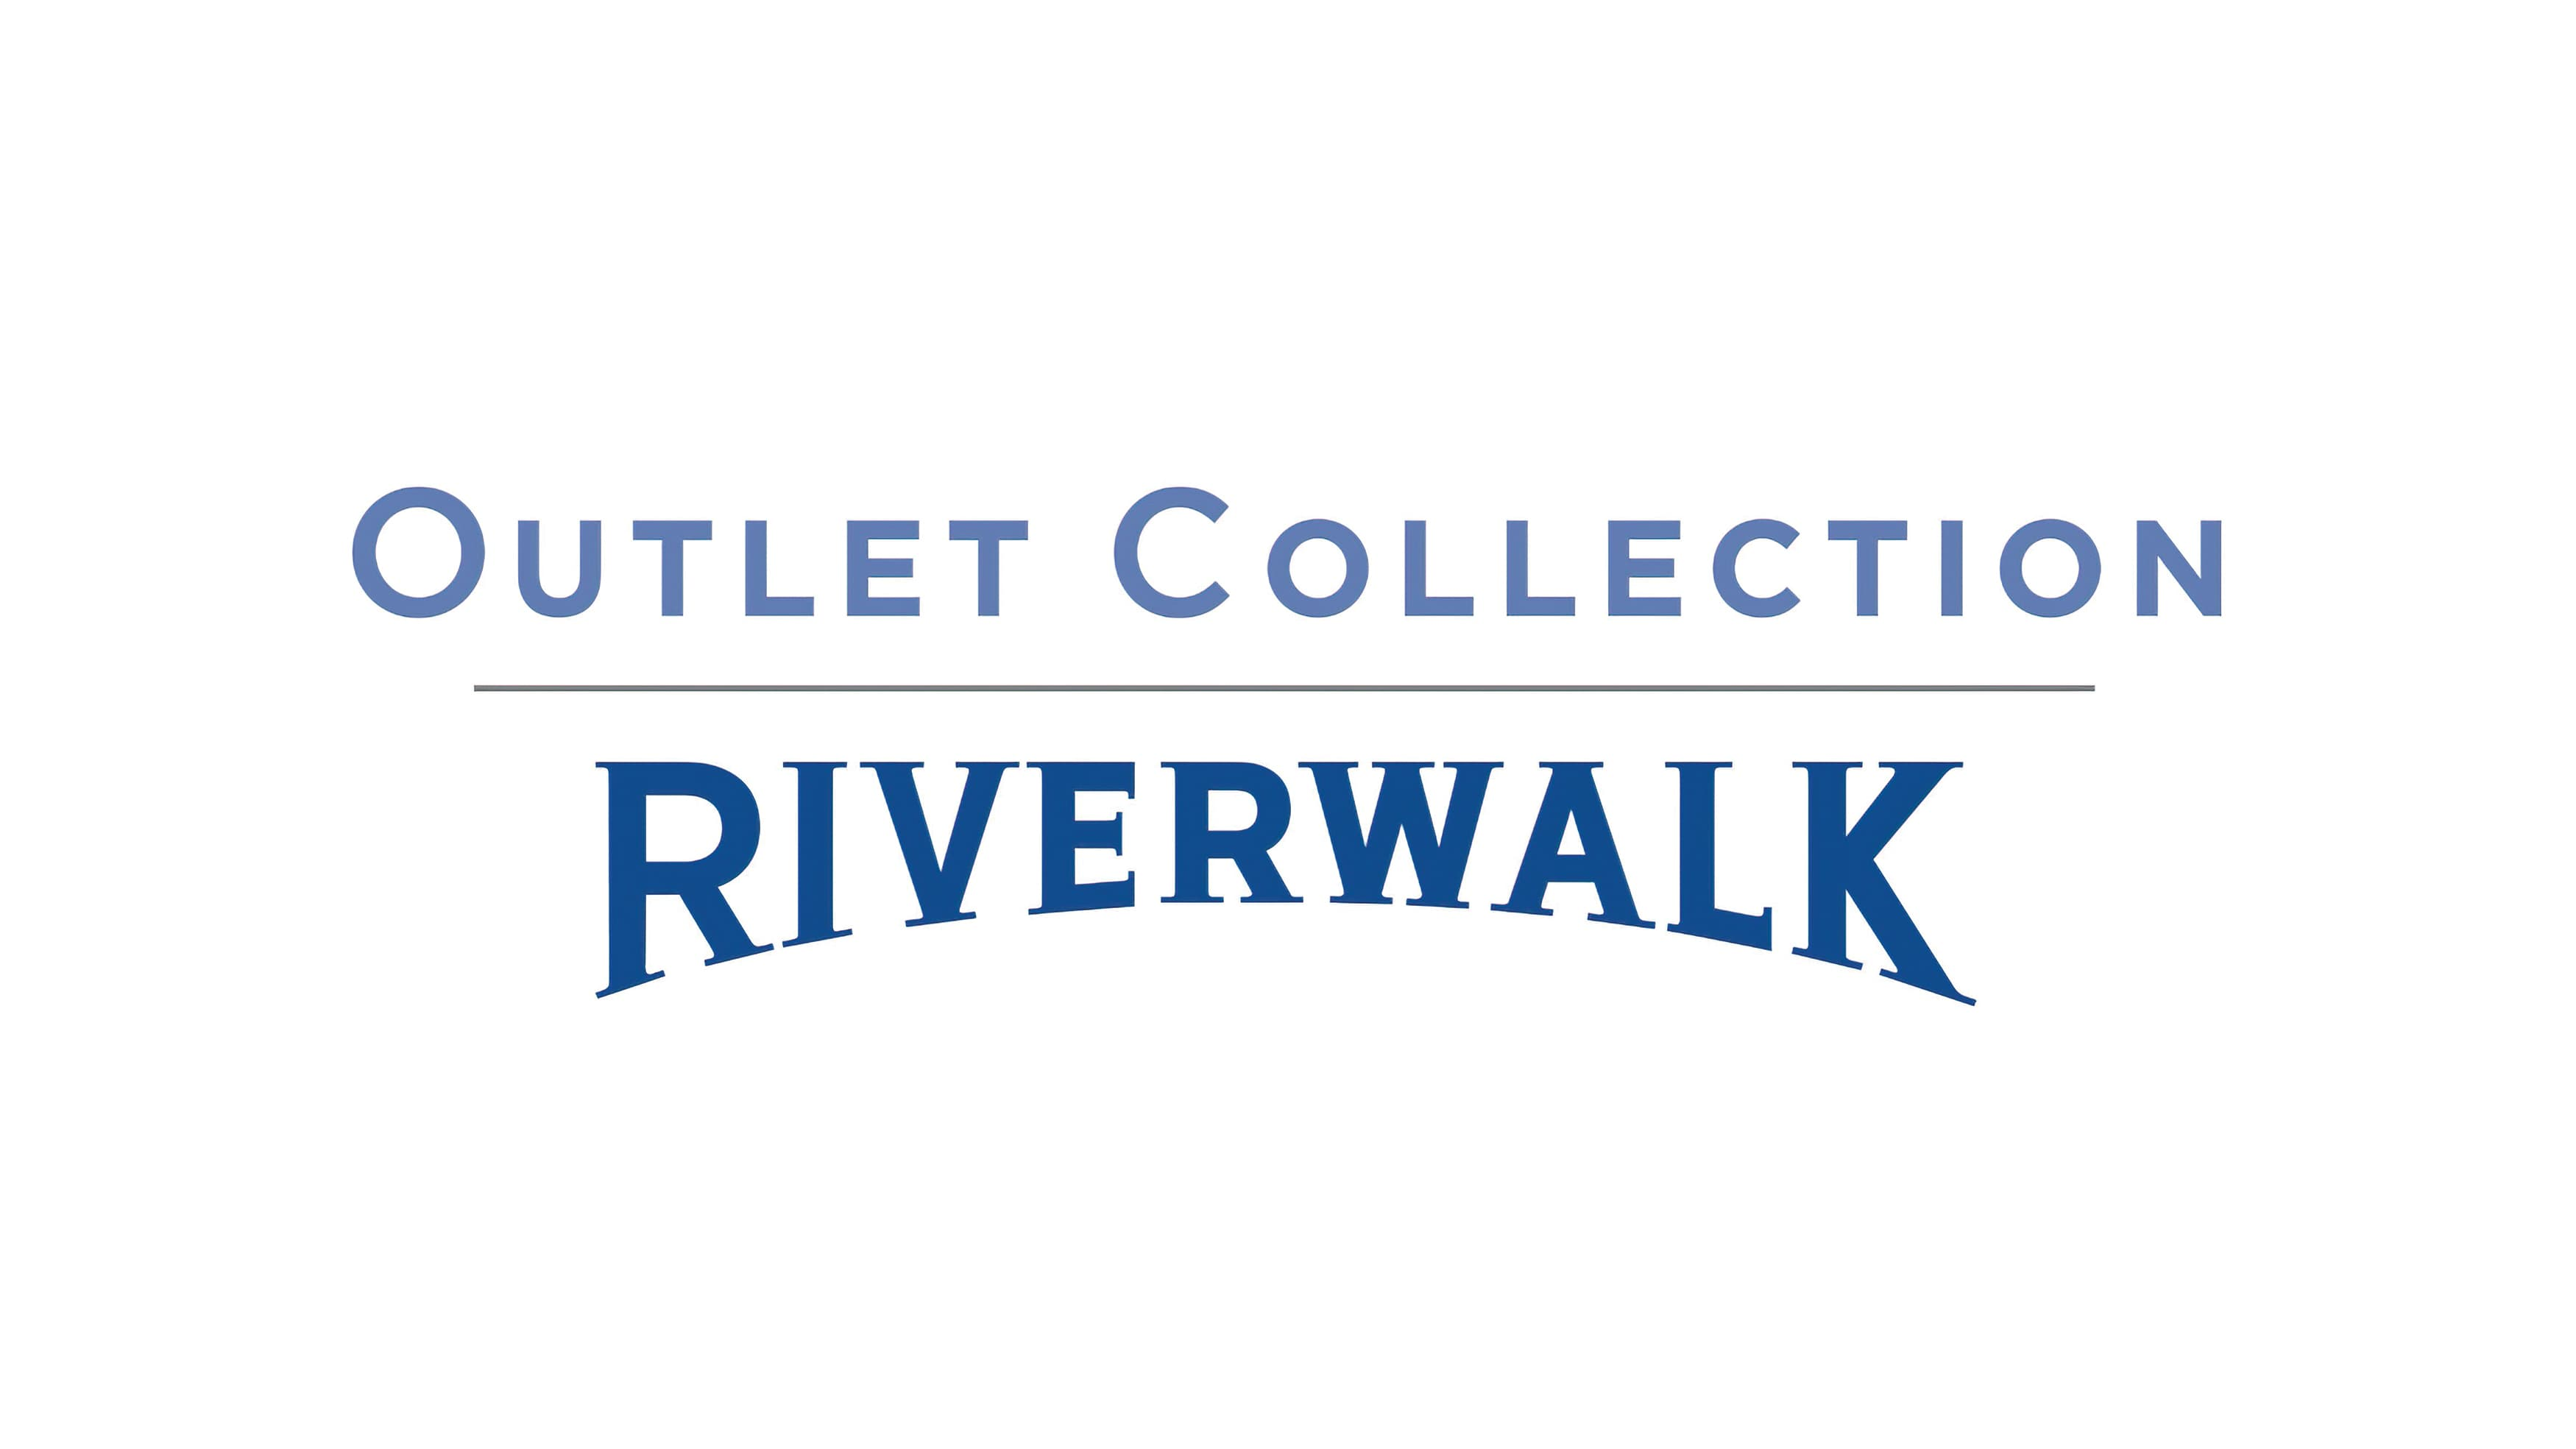 The Outlet Collection at Riverwalk logo designed by RSM design